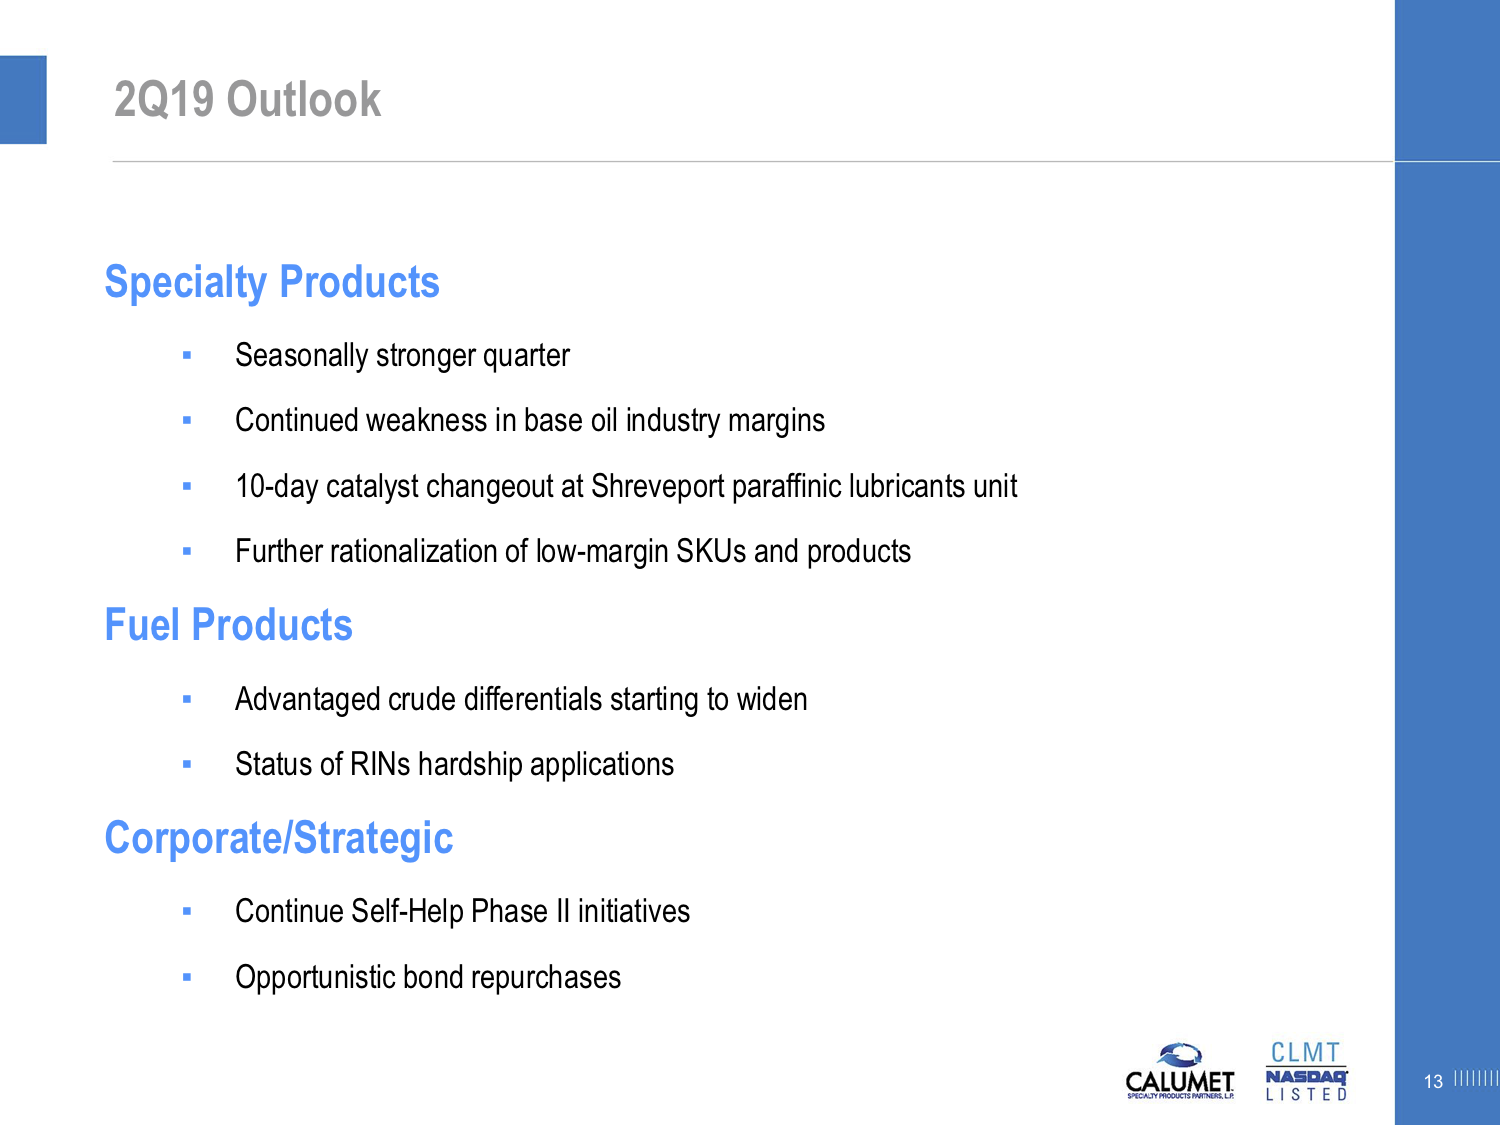 Calumet Specialty Products Partners' 1st Quarter: A Clearer, Bullish Financial Picture Is Appearing